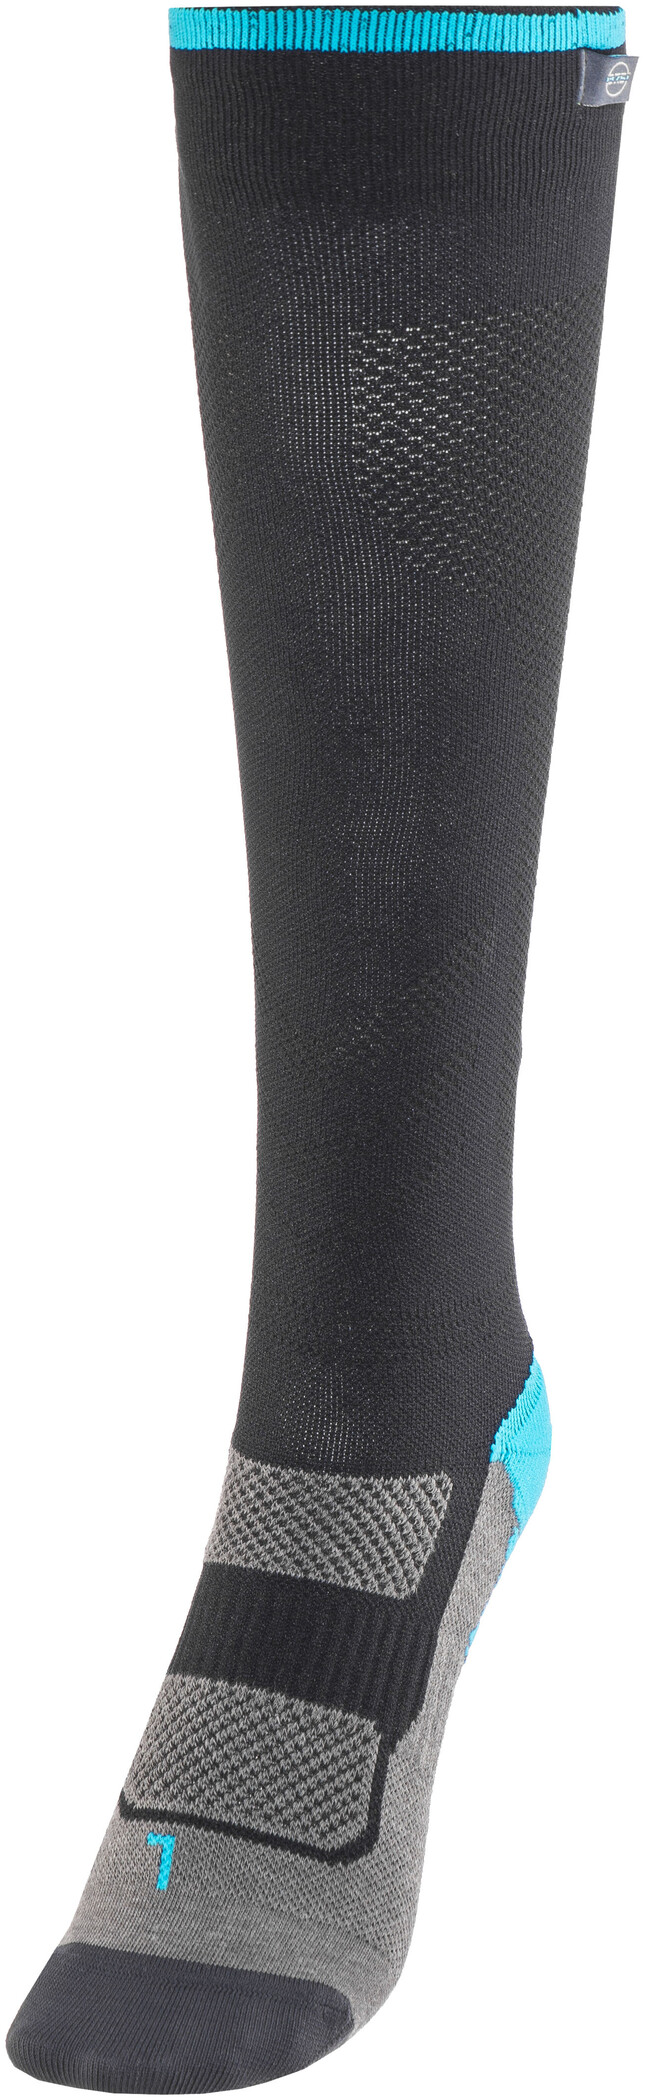 Gococo Compression Superior Air Strømper, black (2019) | Compression